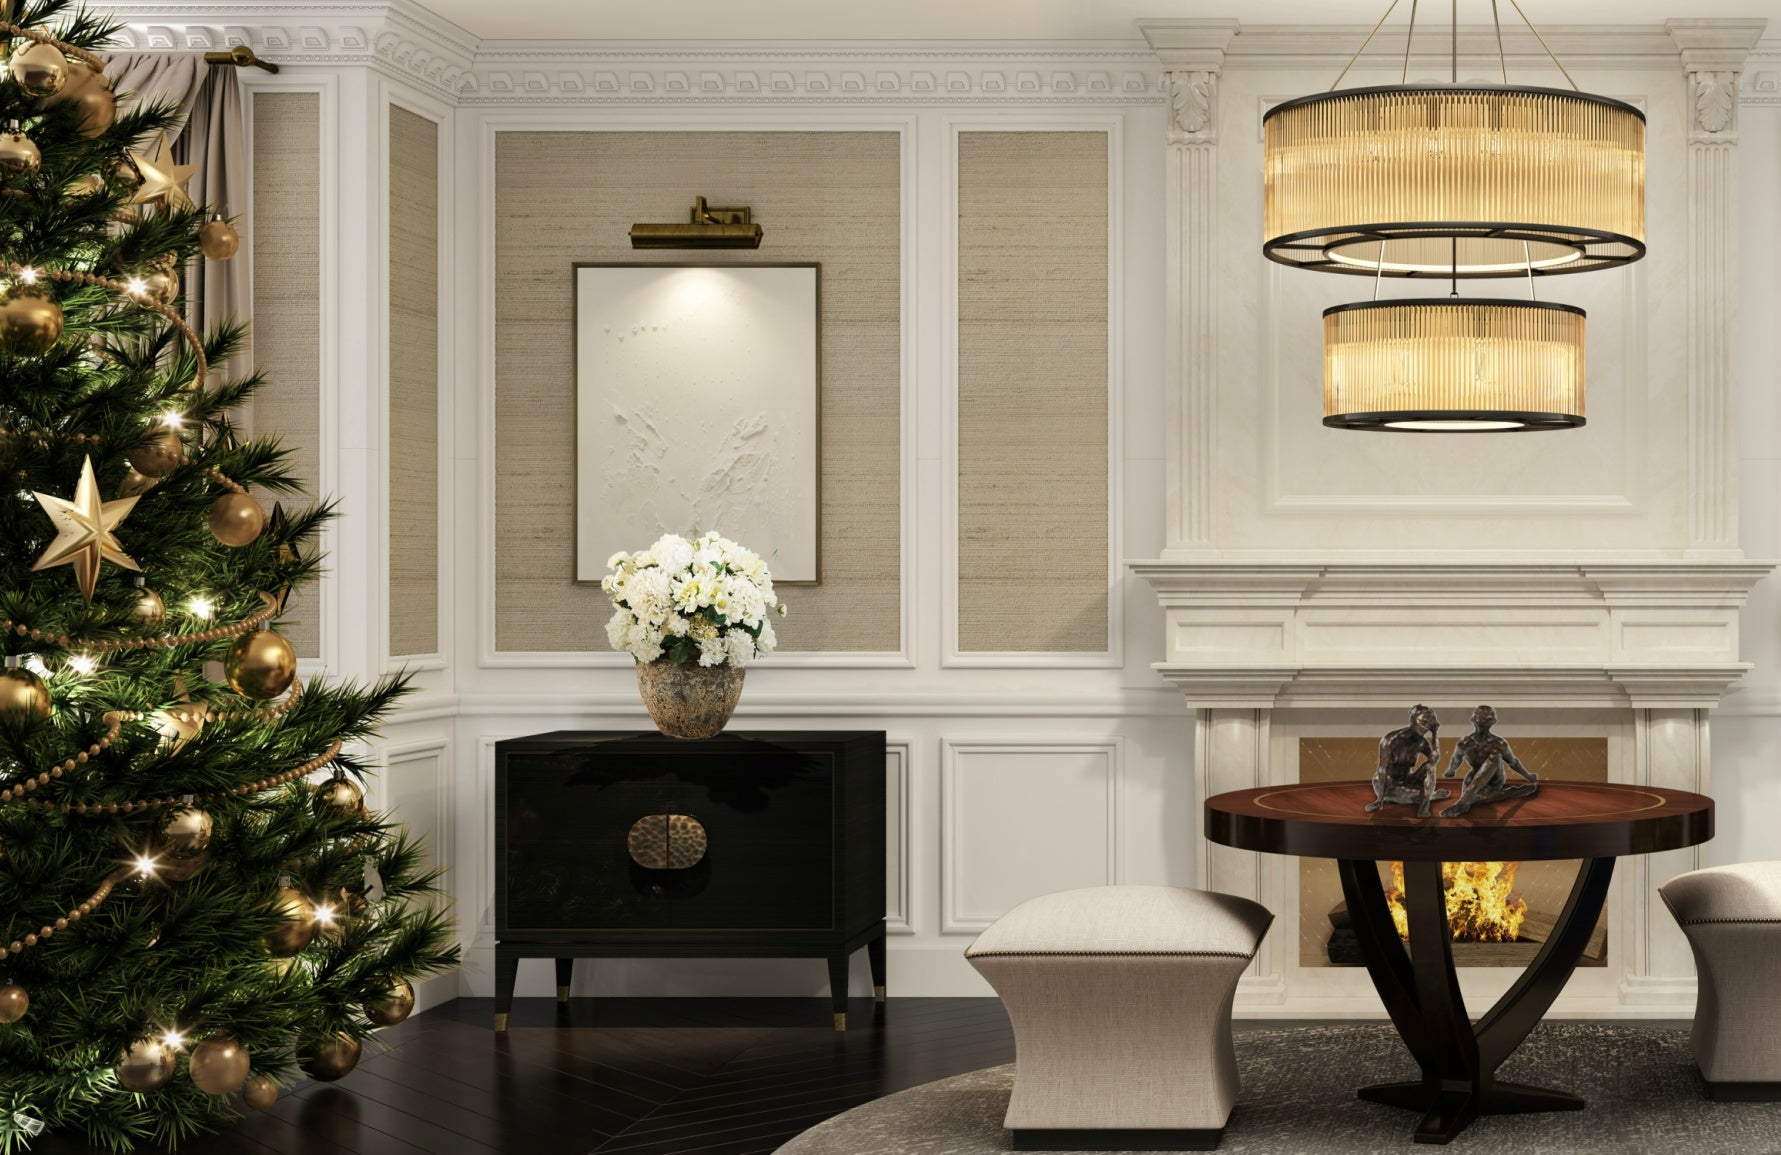 How To Decorate Your Home For Christmas | Christmas Entryway | LuxDeco.com